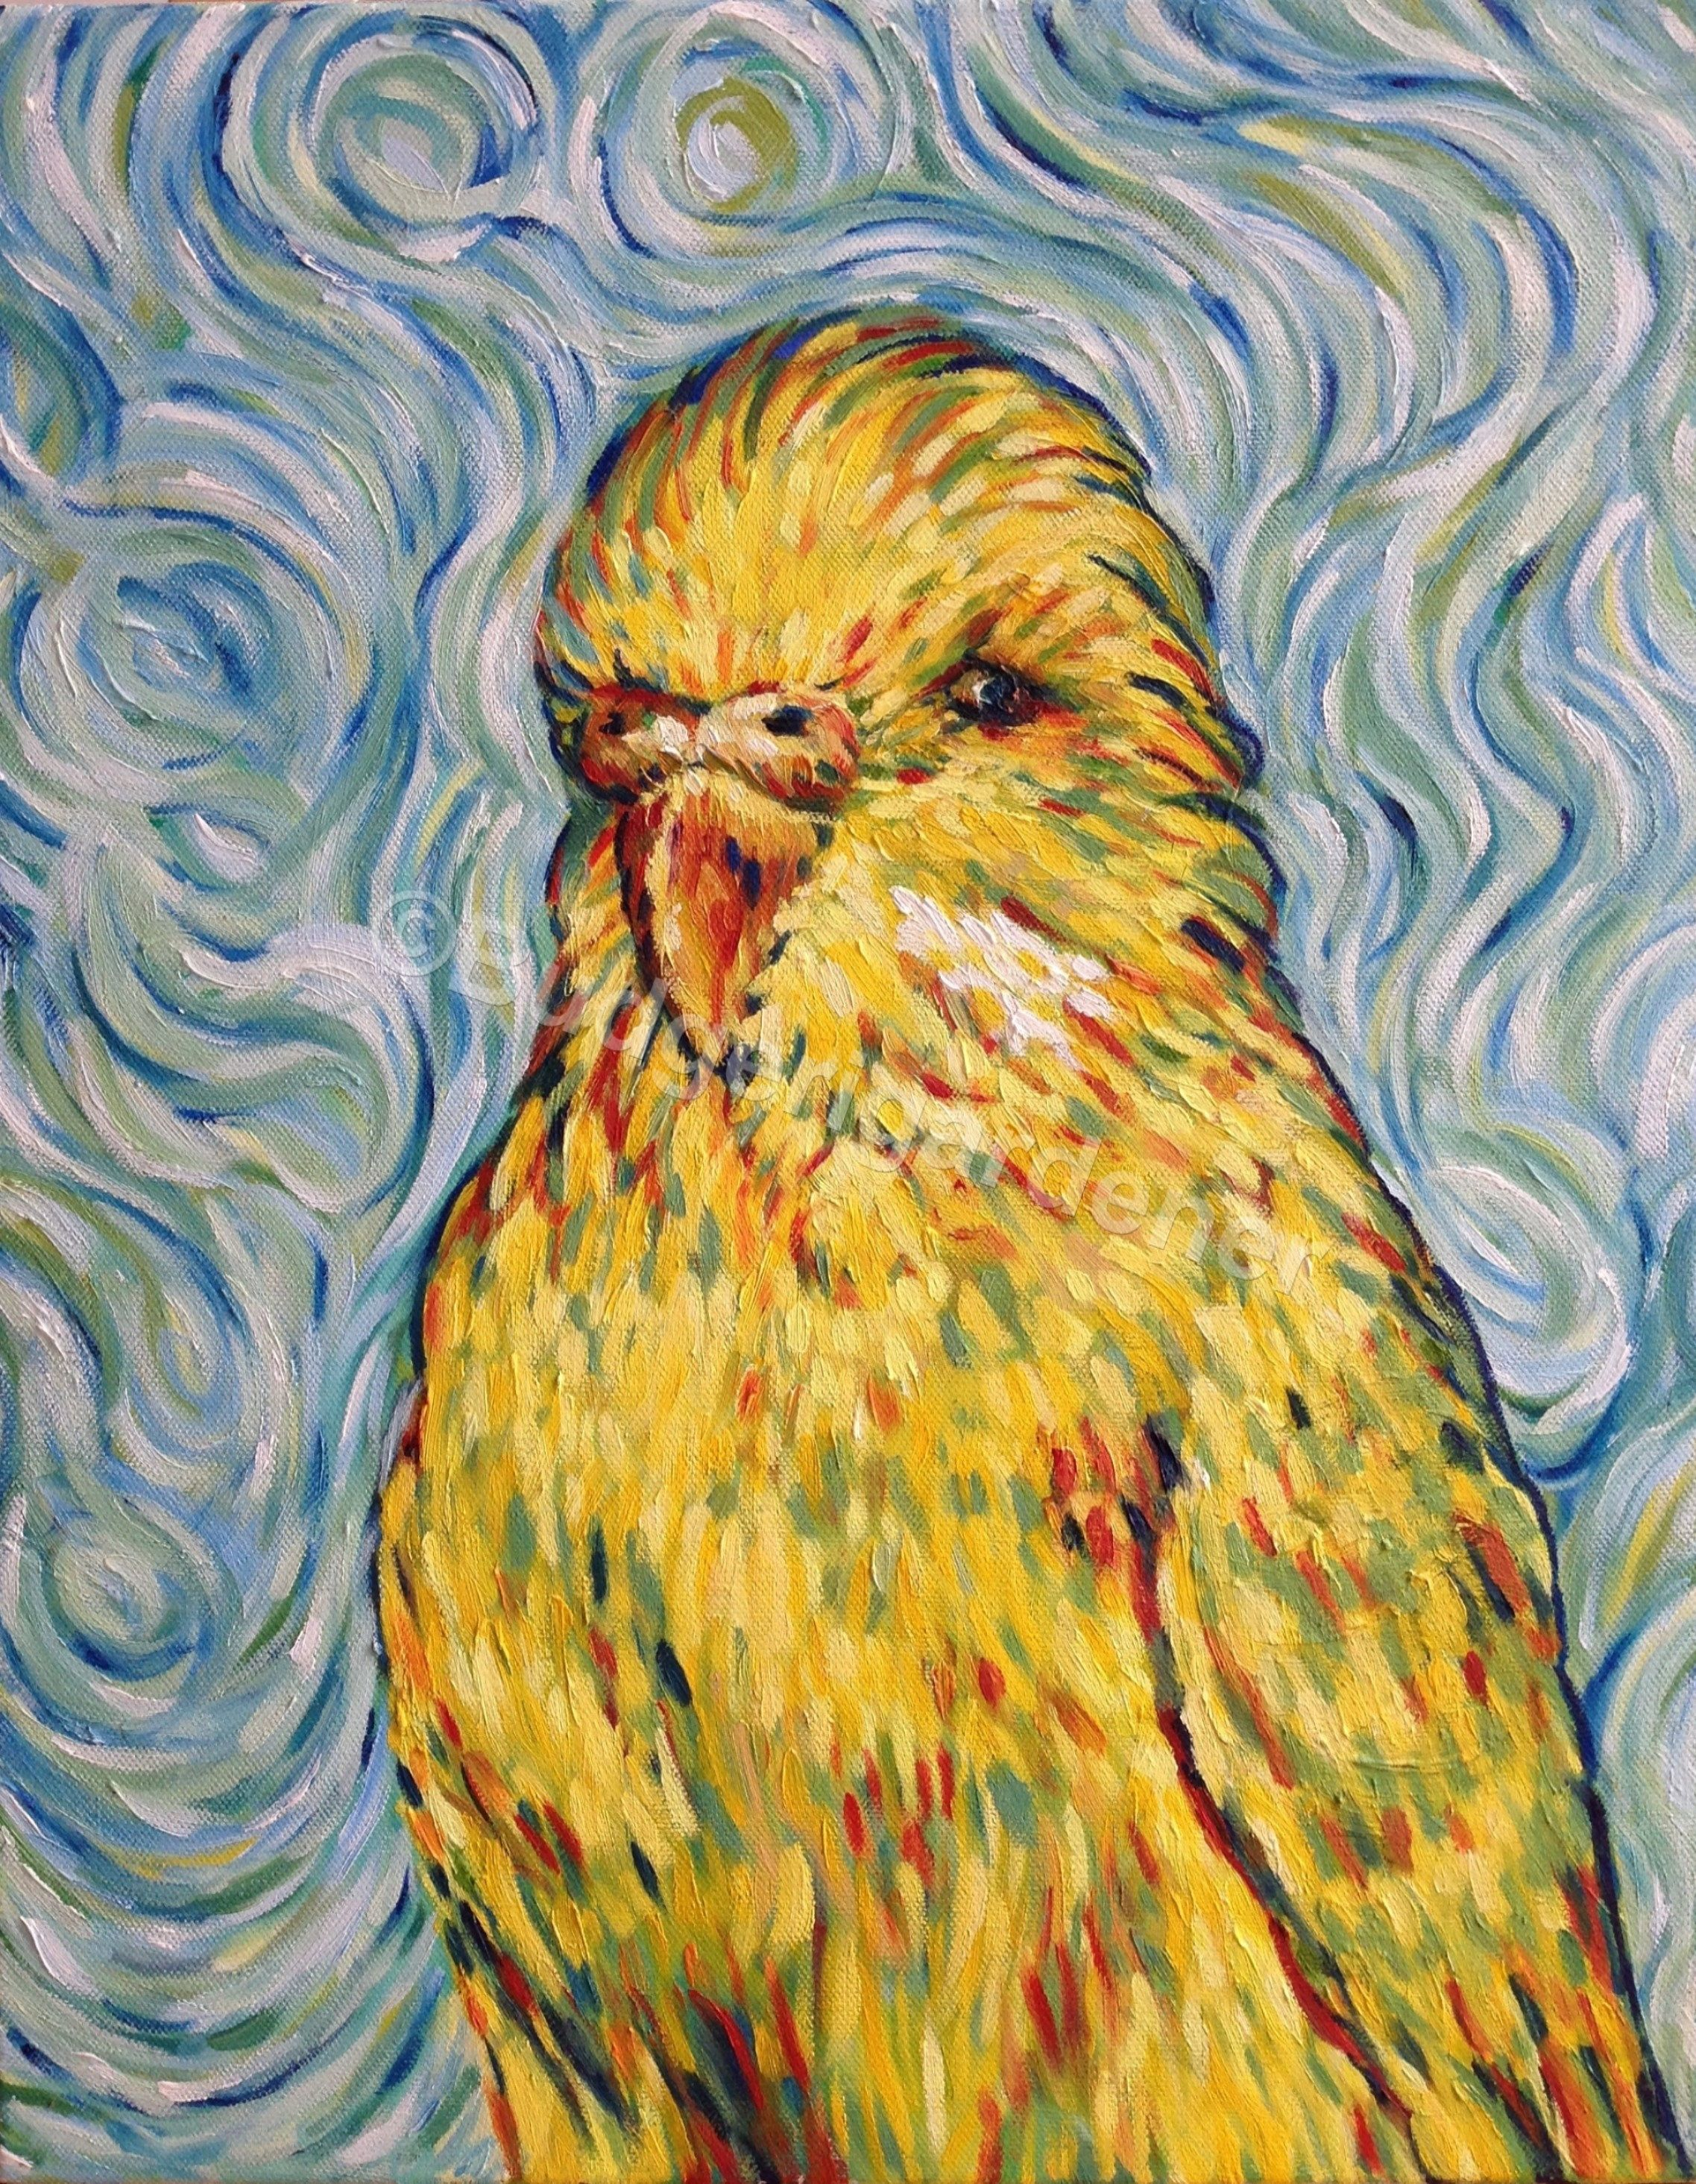 Van Gogh Budgie Budgerigar Parakeet Blank Greeting CardFamous Painting ImpressionismFrom Original Oil By Budgerigardener